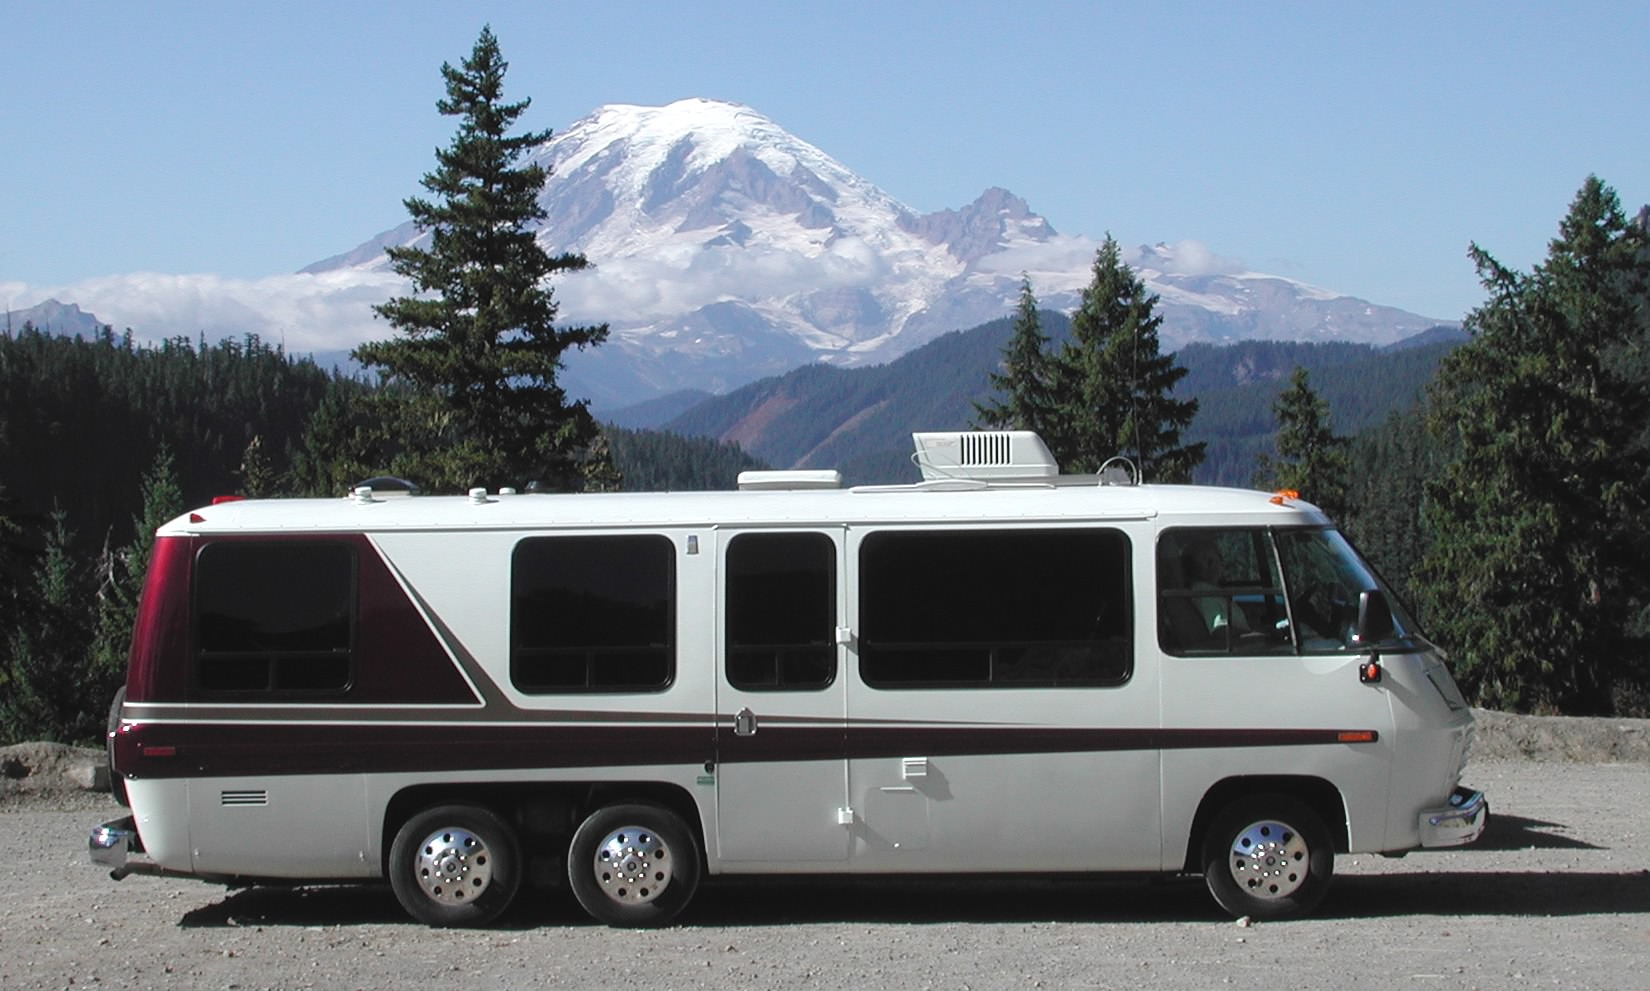 Lastest HART RANCH  With The Rounded Edges, Big Windows, Earthtone Colors And Plaid Upholstery, The GMC Motorhomes Are Like The 1970s With Wheels But To Their Fans, GMC Motorhomes Are Still The Smoothest Riding Recreational Vehicles On